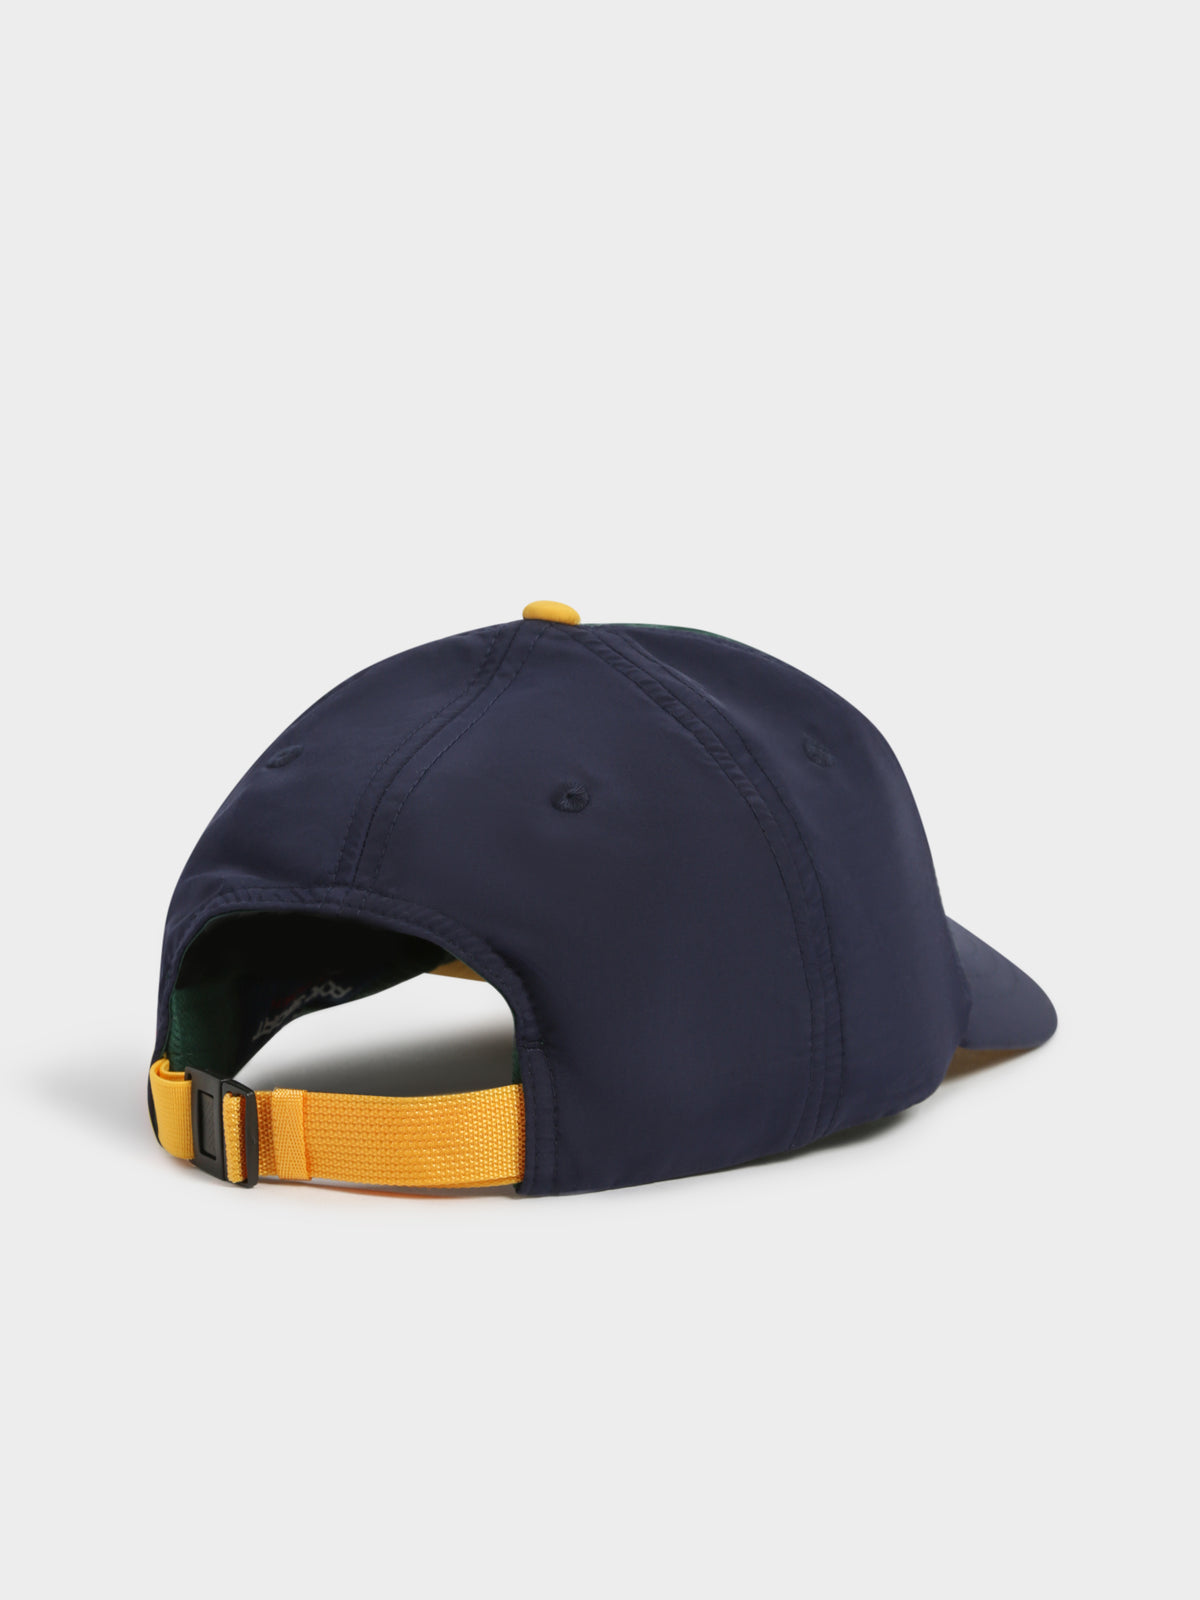 Nylon CLS Sports Cap in College Green & Cruise Navy